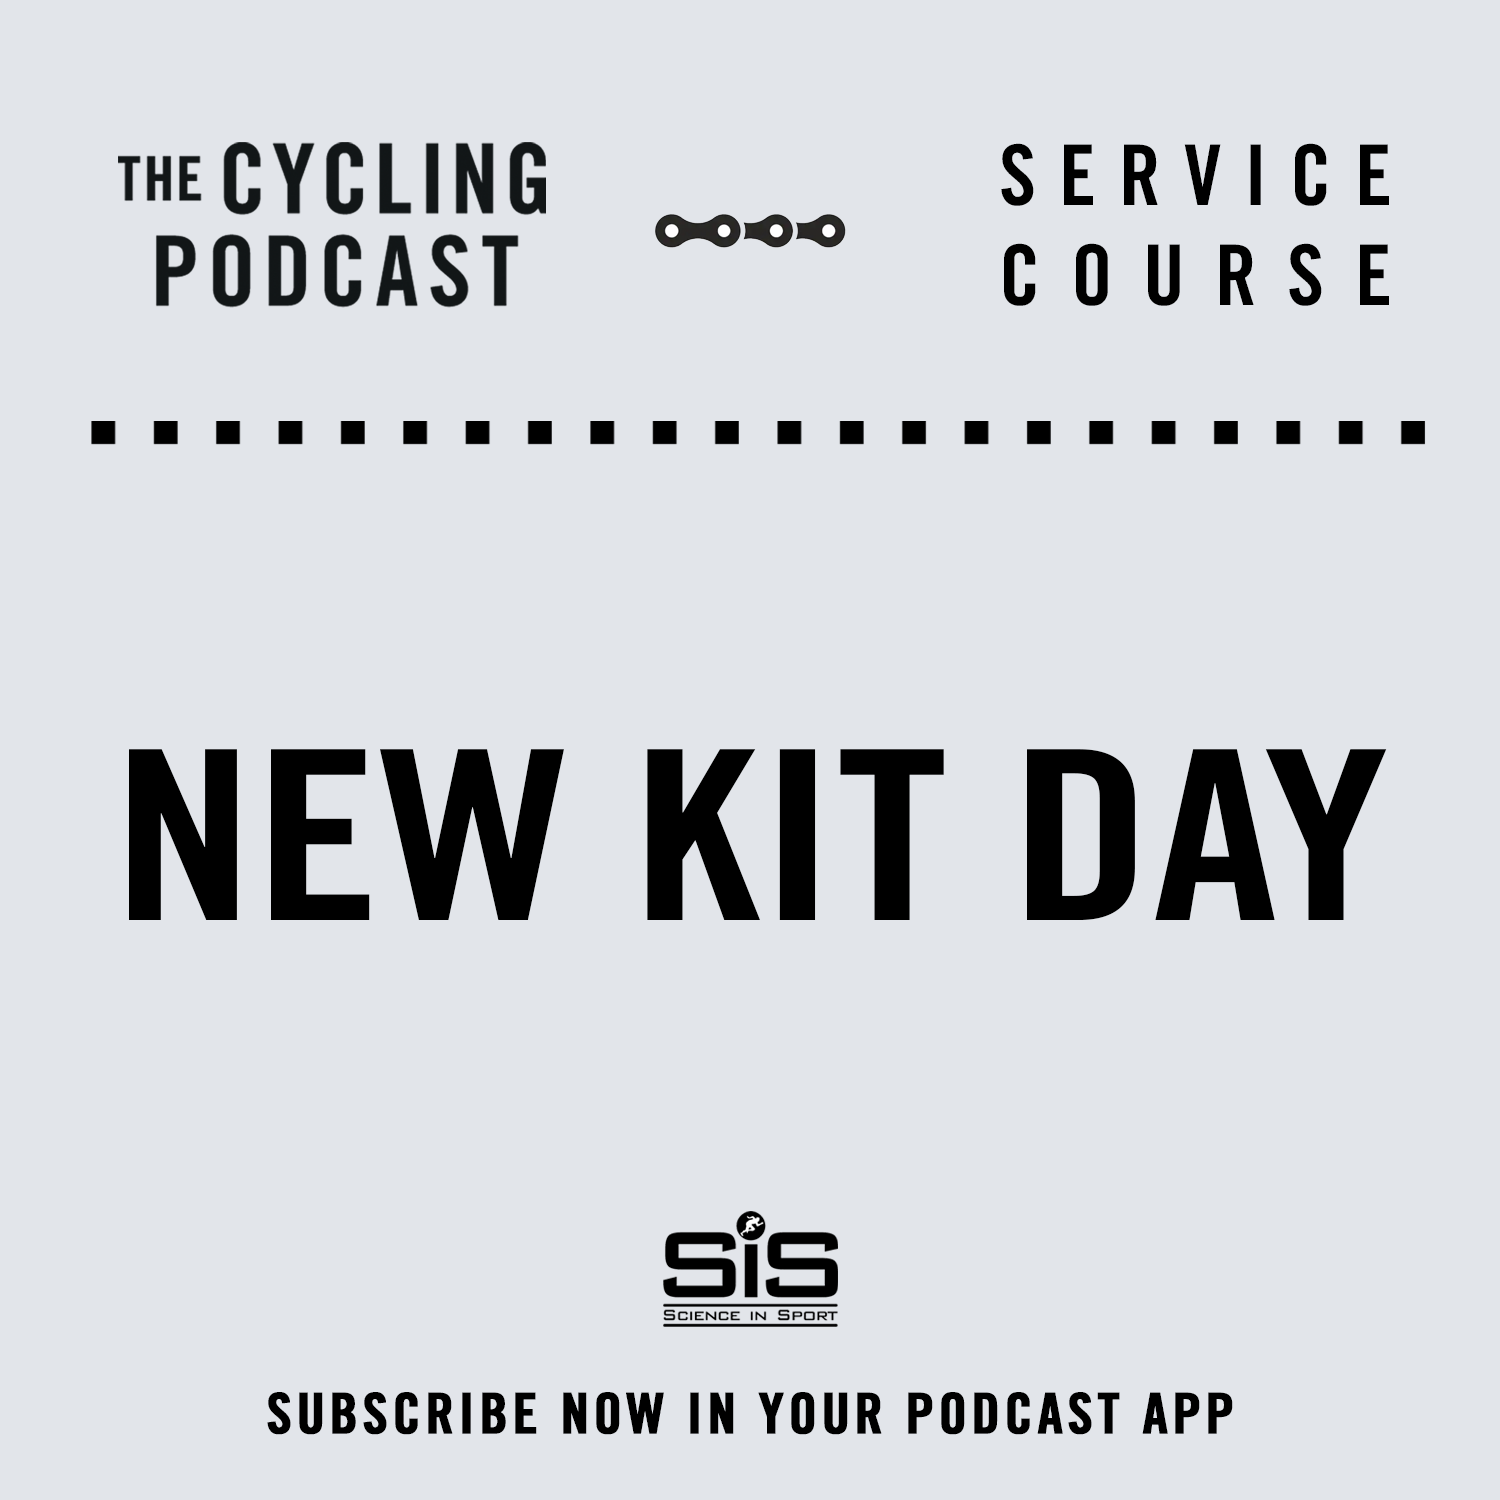 21: Service Course | Episode 7 | New kit day